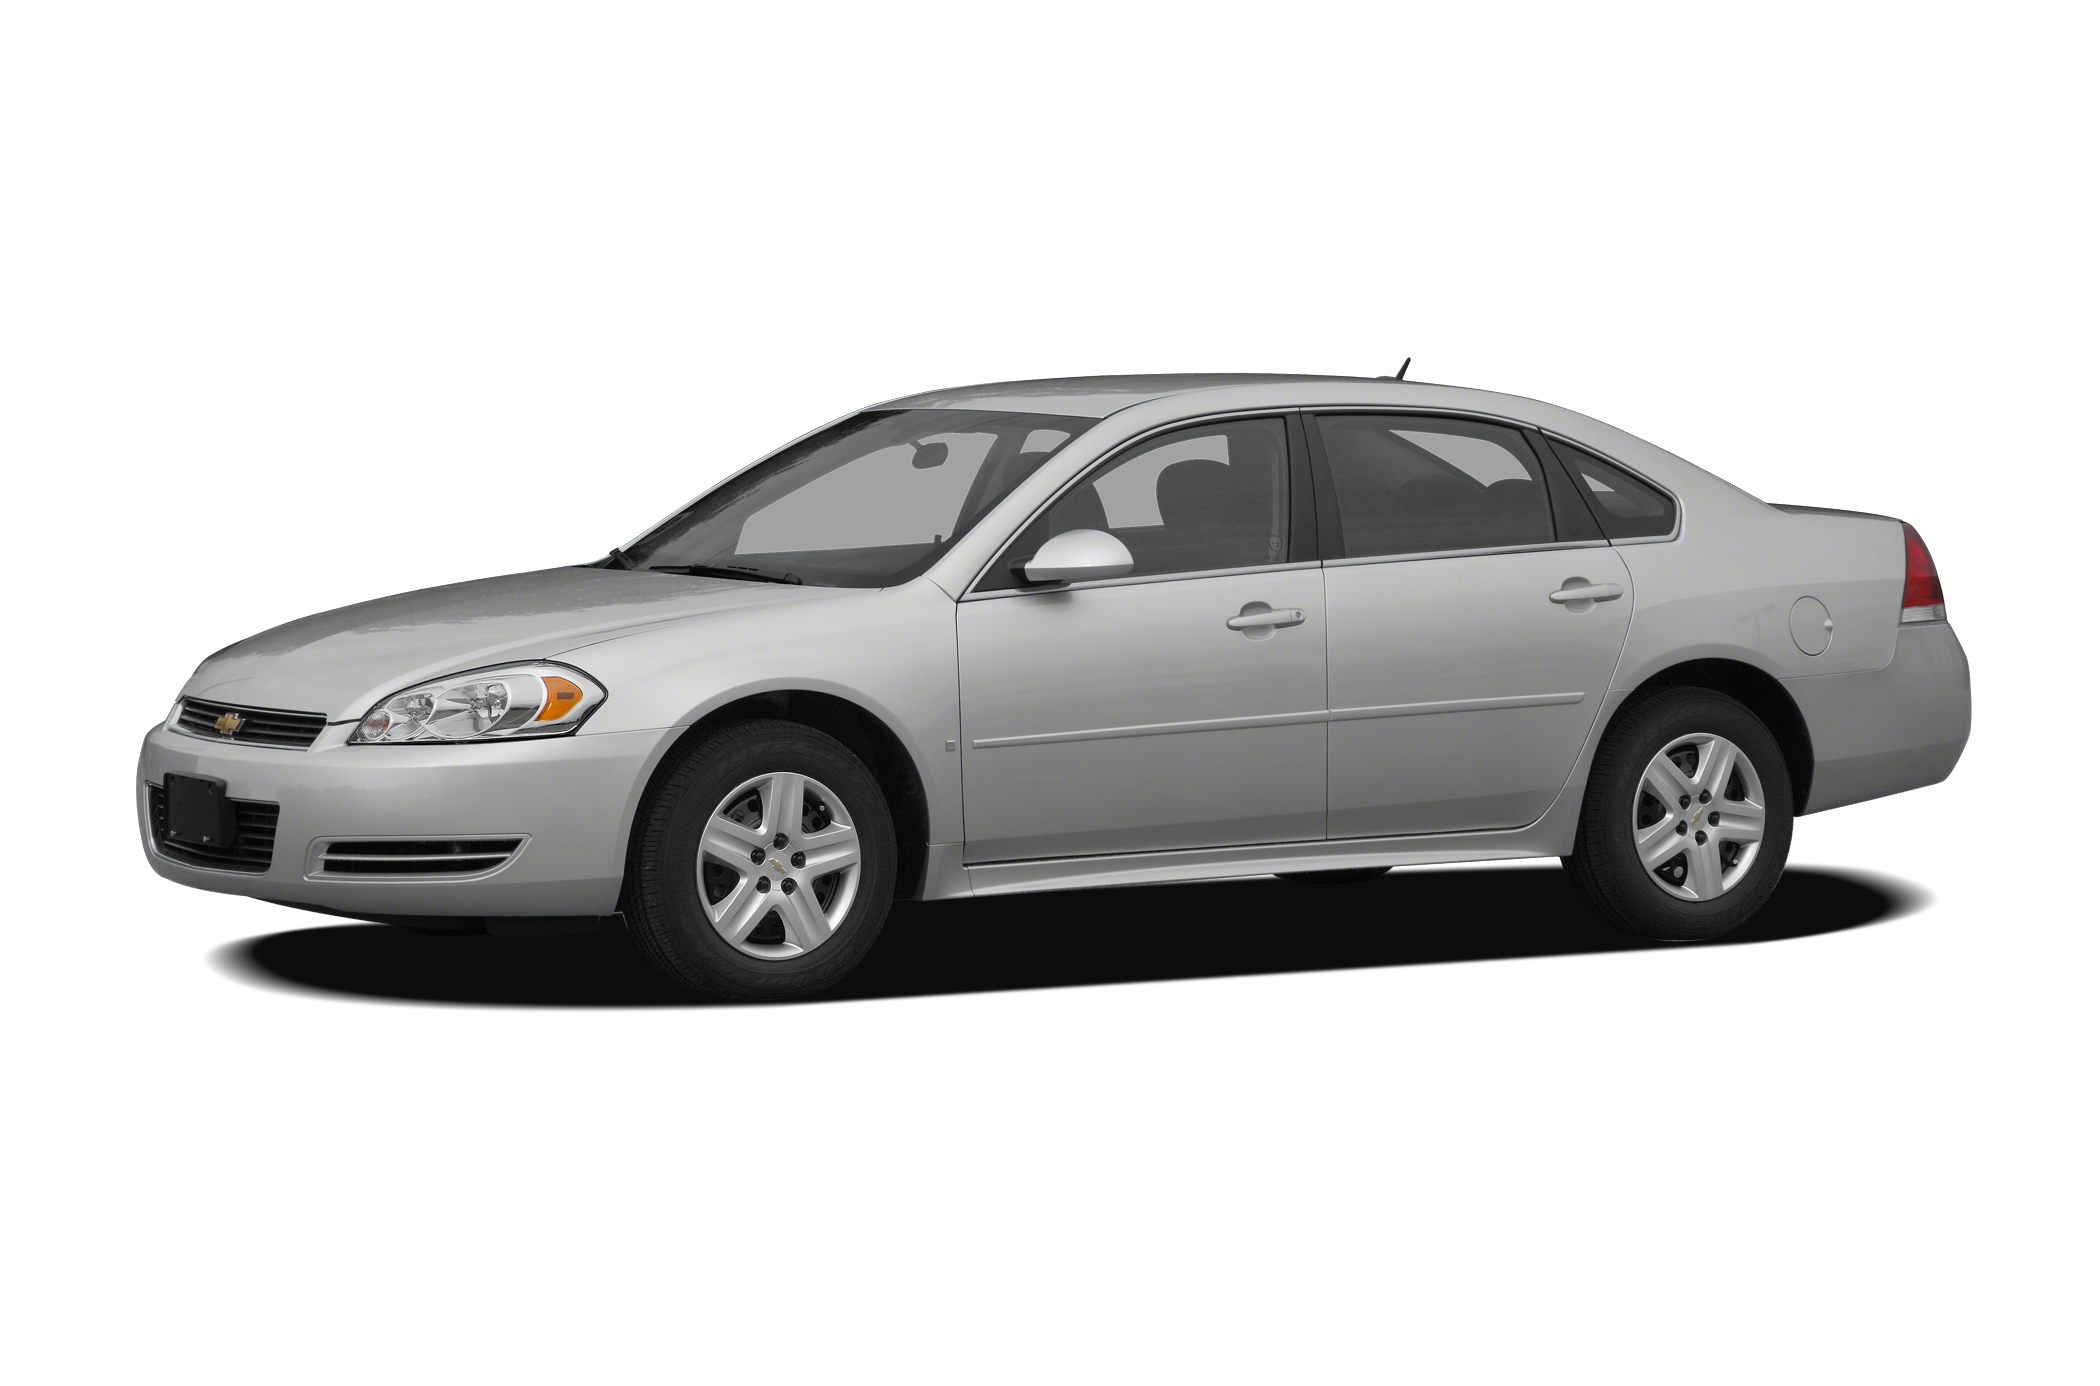 2009 Chevrolet Impala LT Sedan for sale in Brentwood for $9,999 with 137,689 miles.